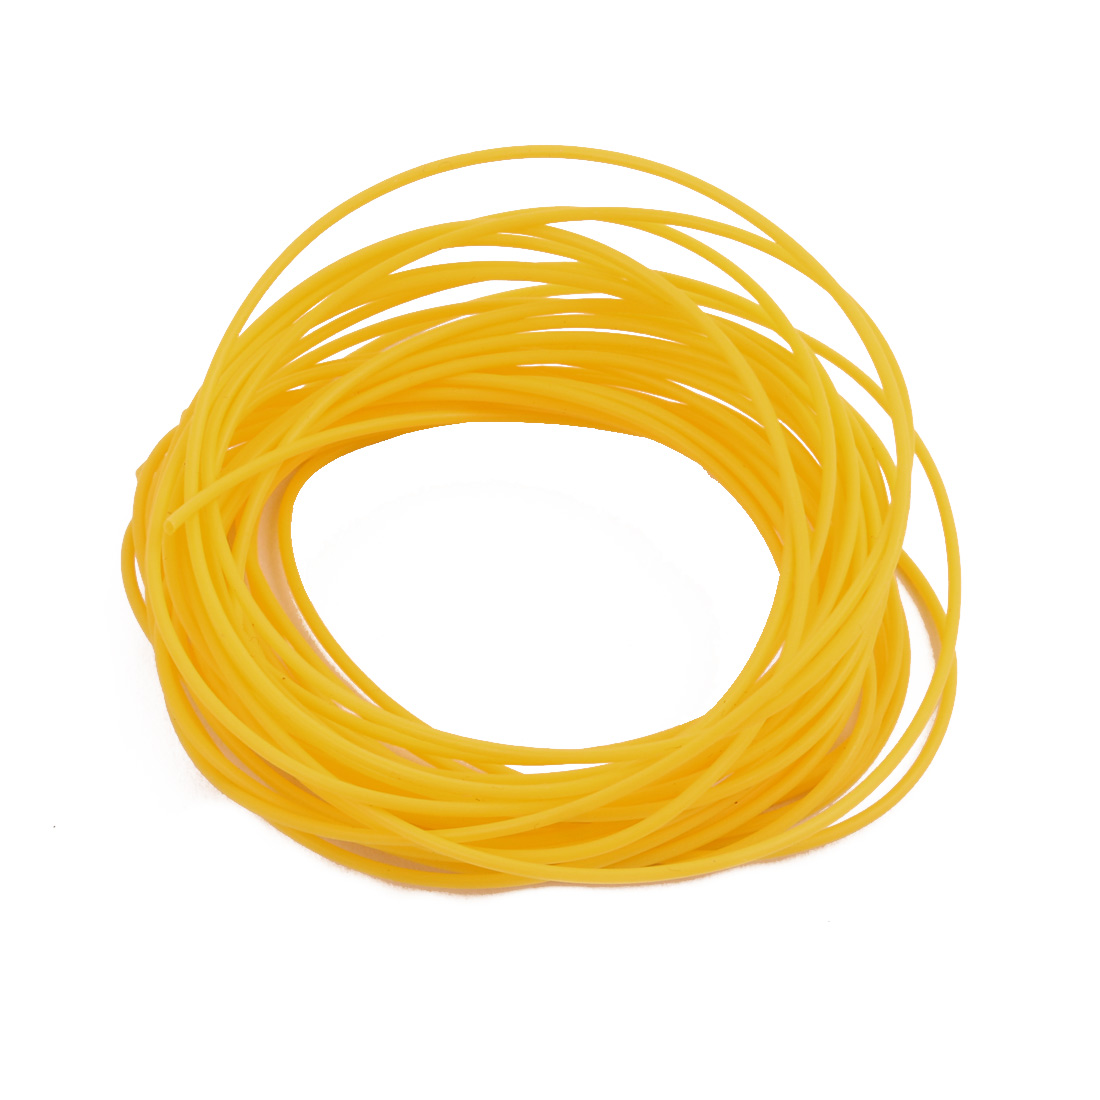 0.96mmx1.26mm PTFE Resistant High Temperature Yellow Tubing 5Meters 16.4 Ft